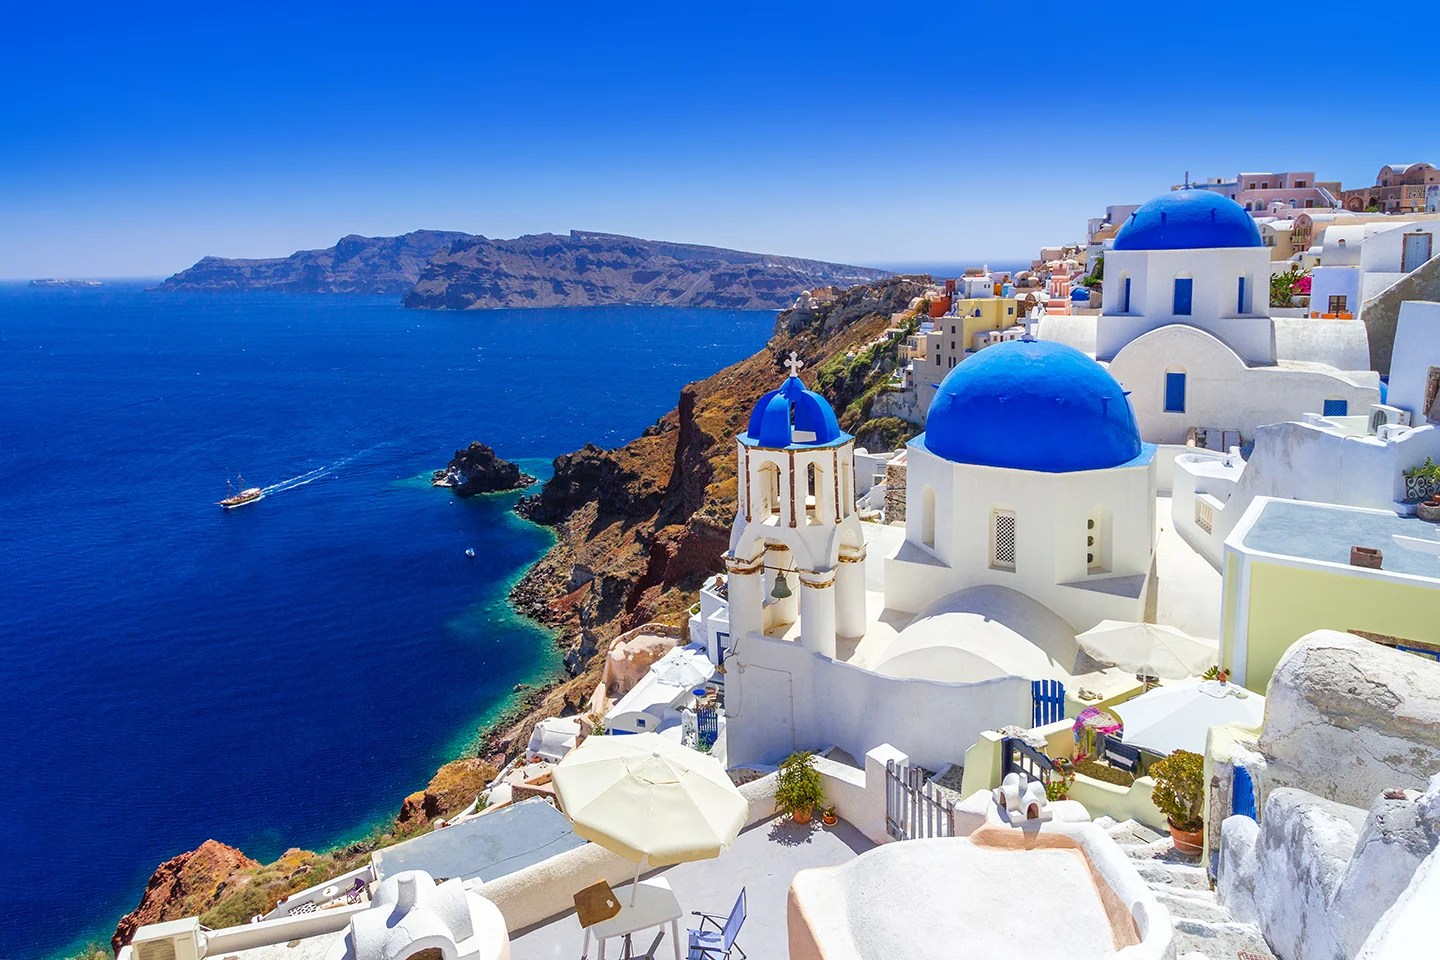 Old white buildings with blue roofs on Santorini, Greece. There is a small fishing boat in the sea on the left.